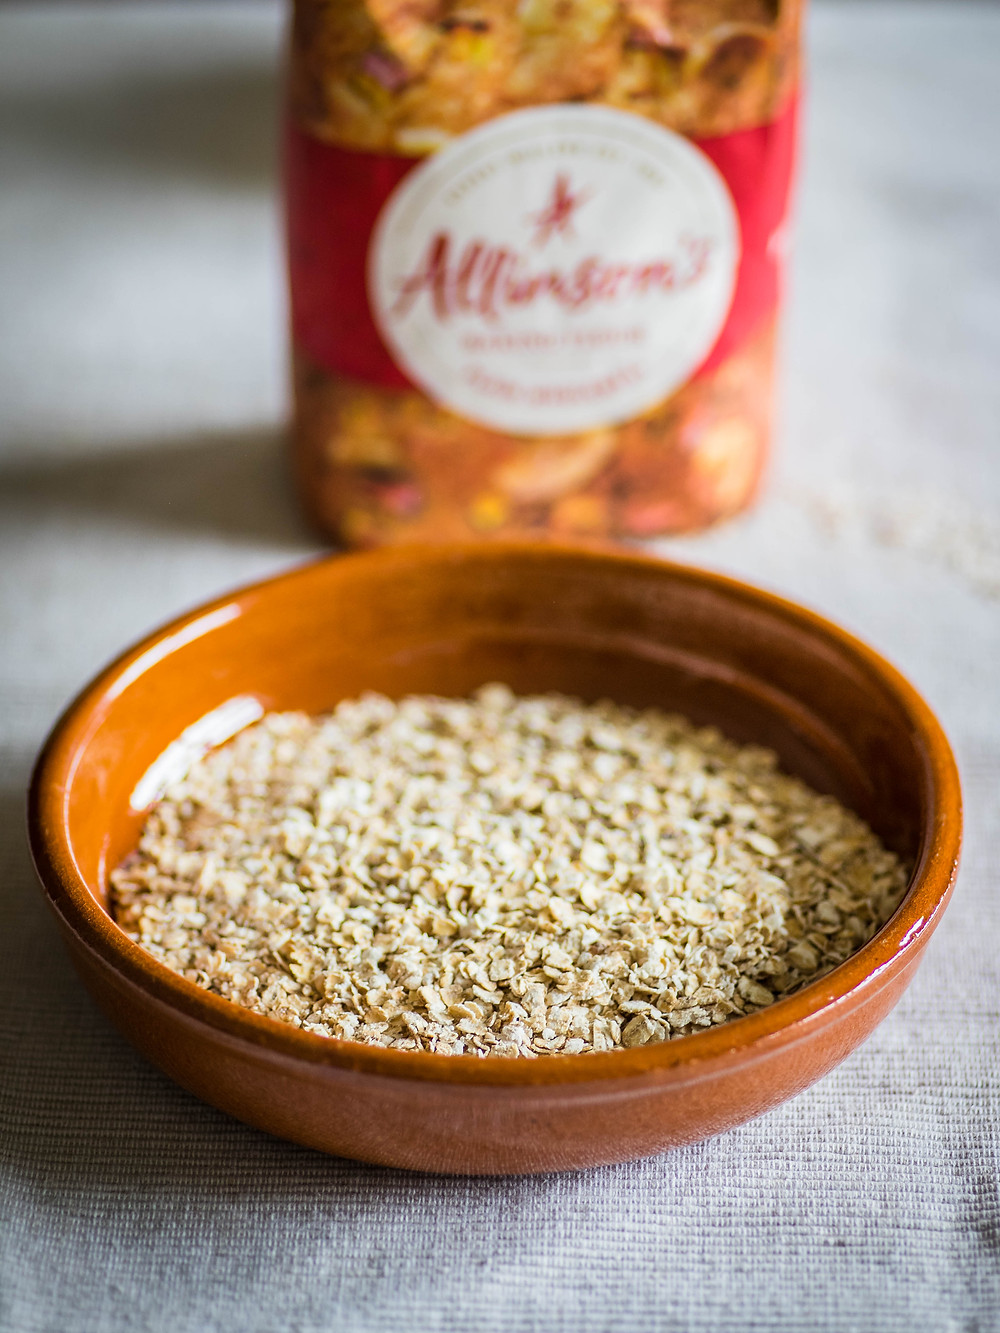 Oats and wholemeal flour